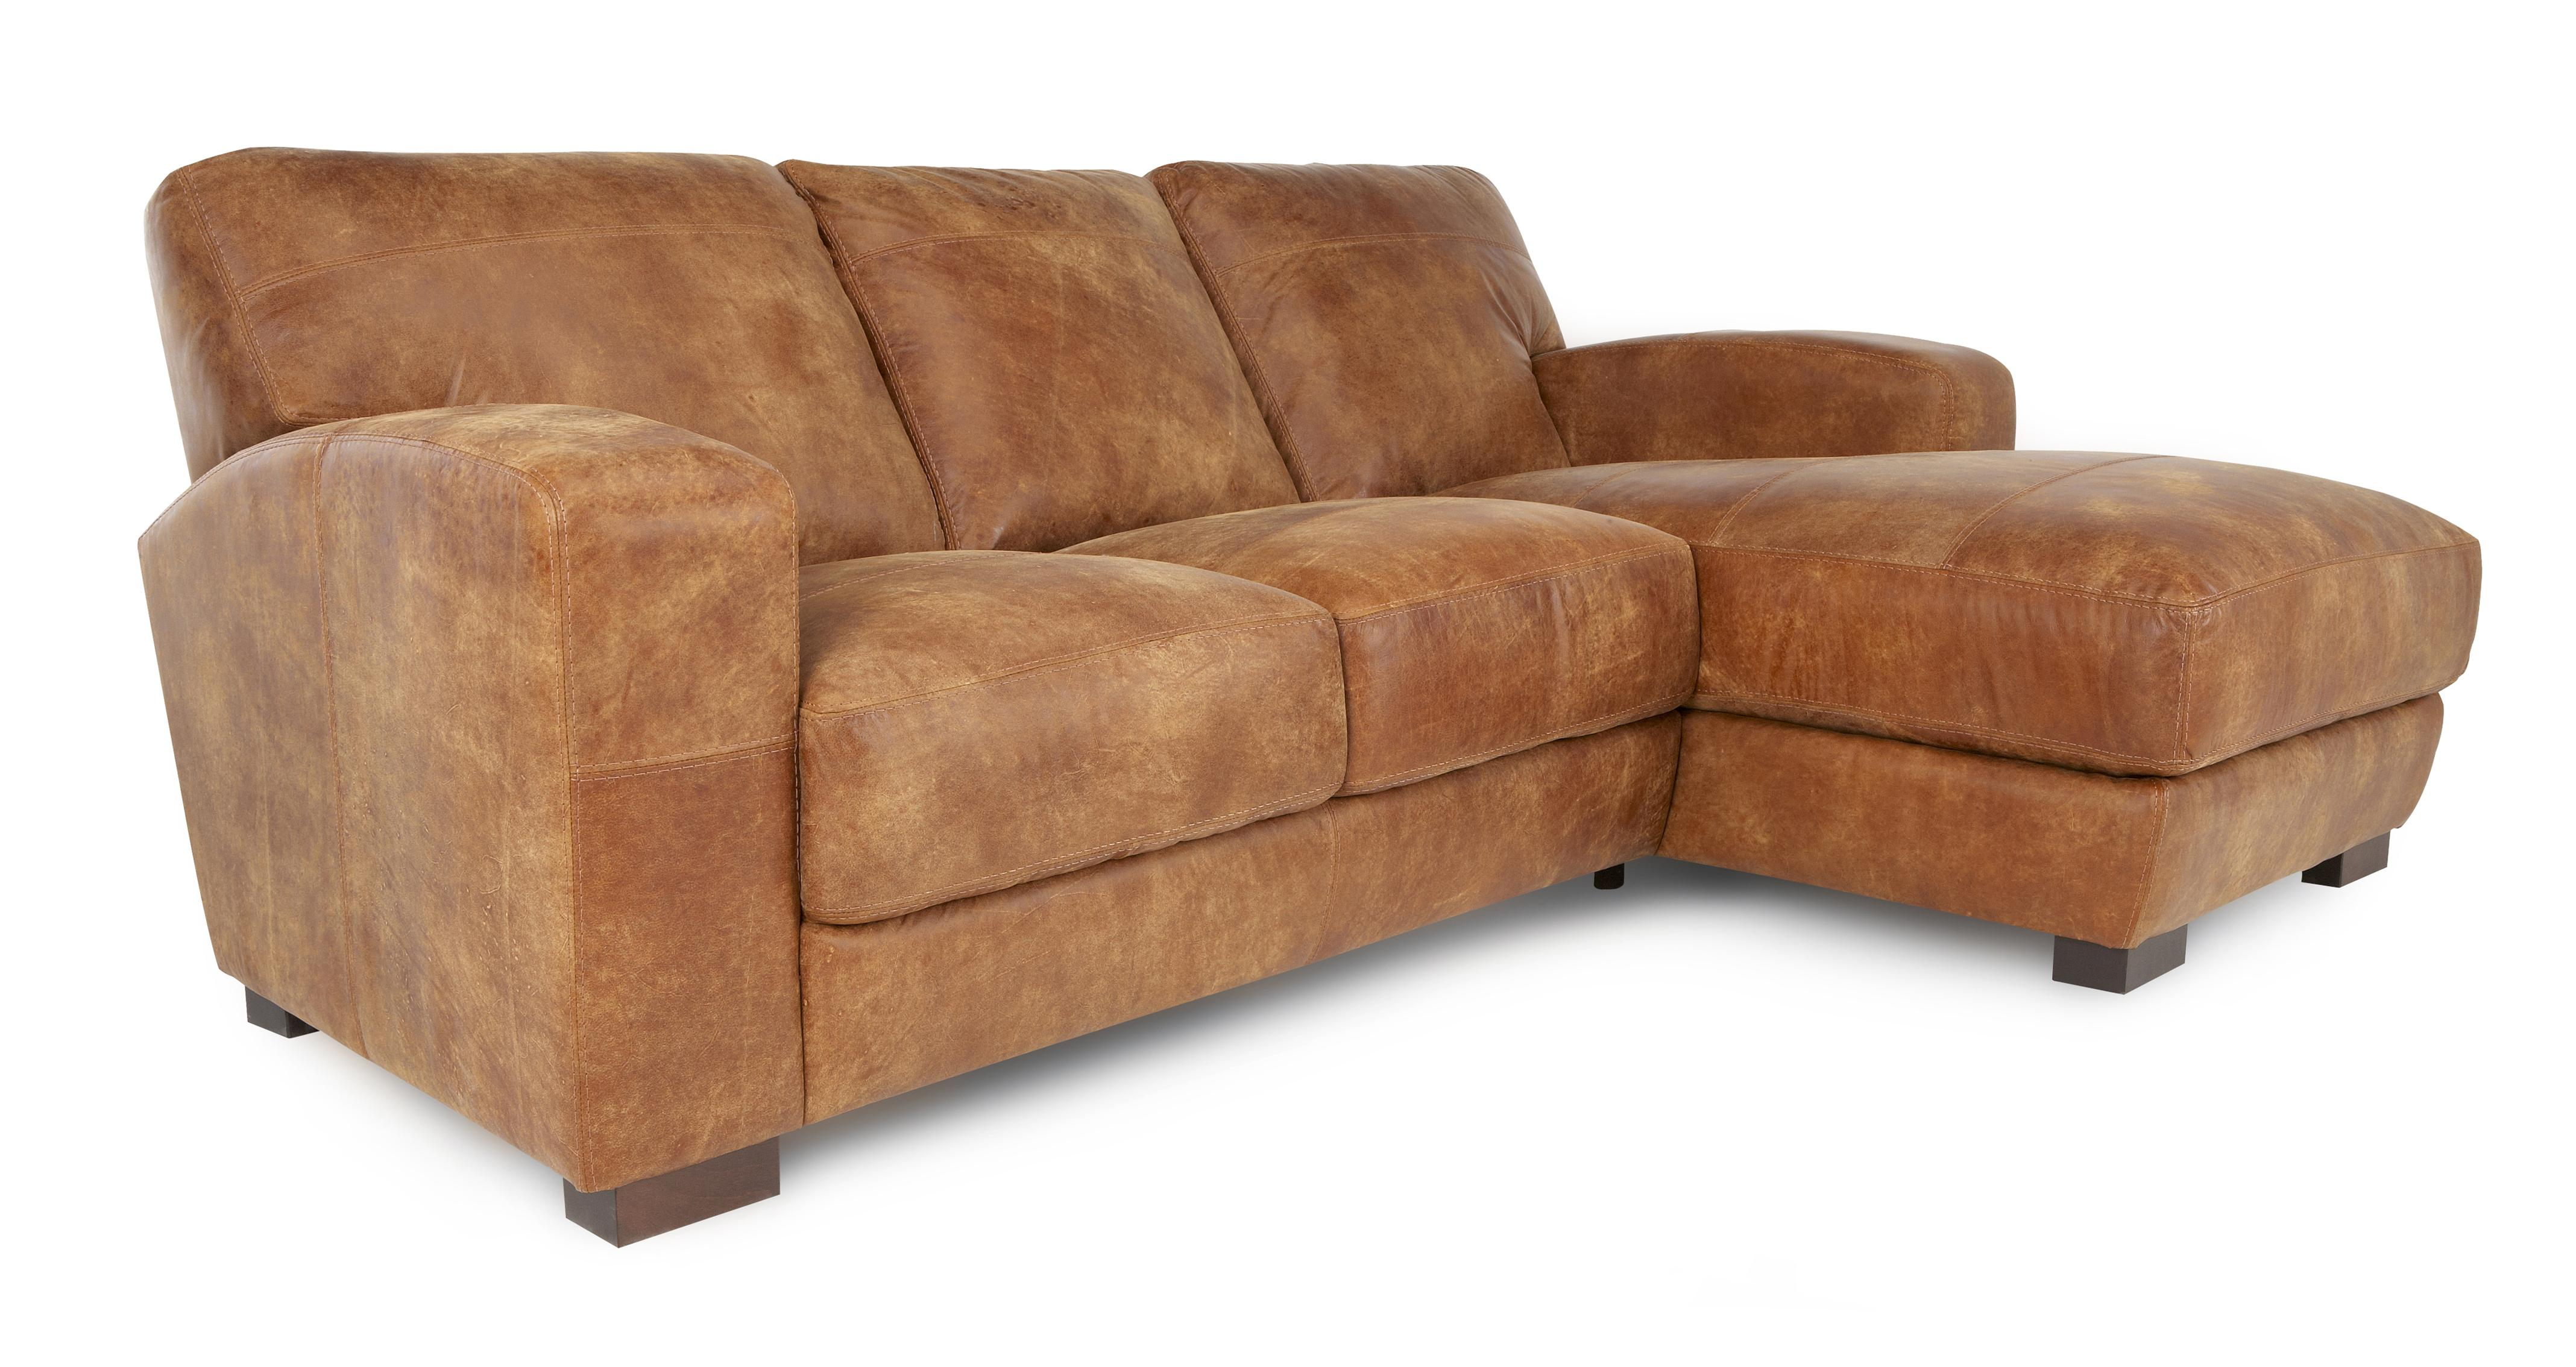 100 real leather corner sofa extra long table dfs caesar natural aniline right hand